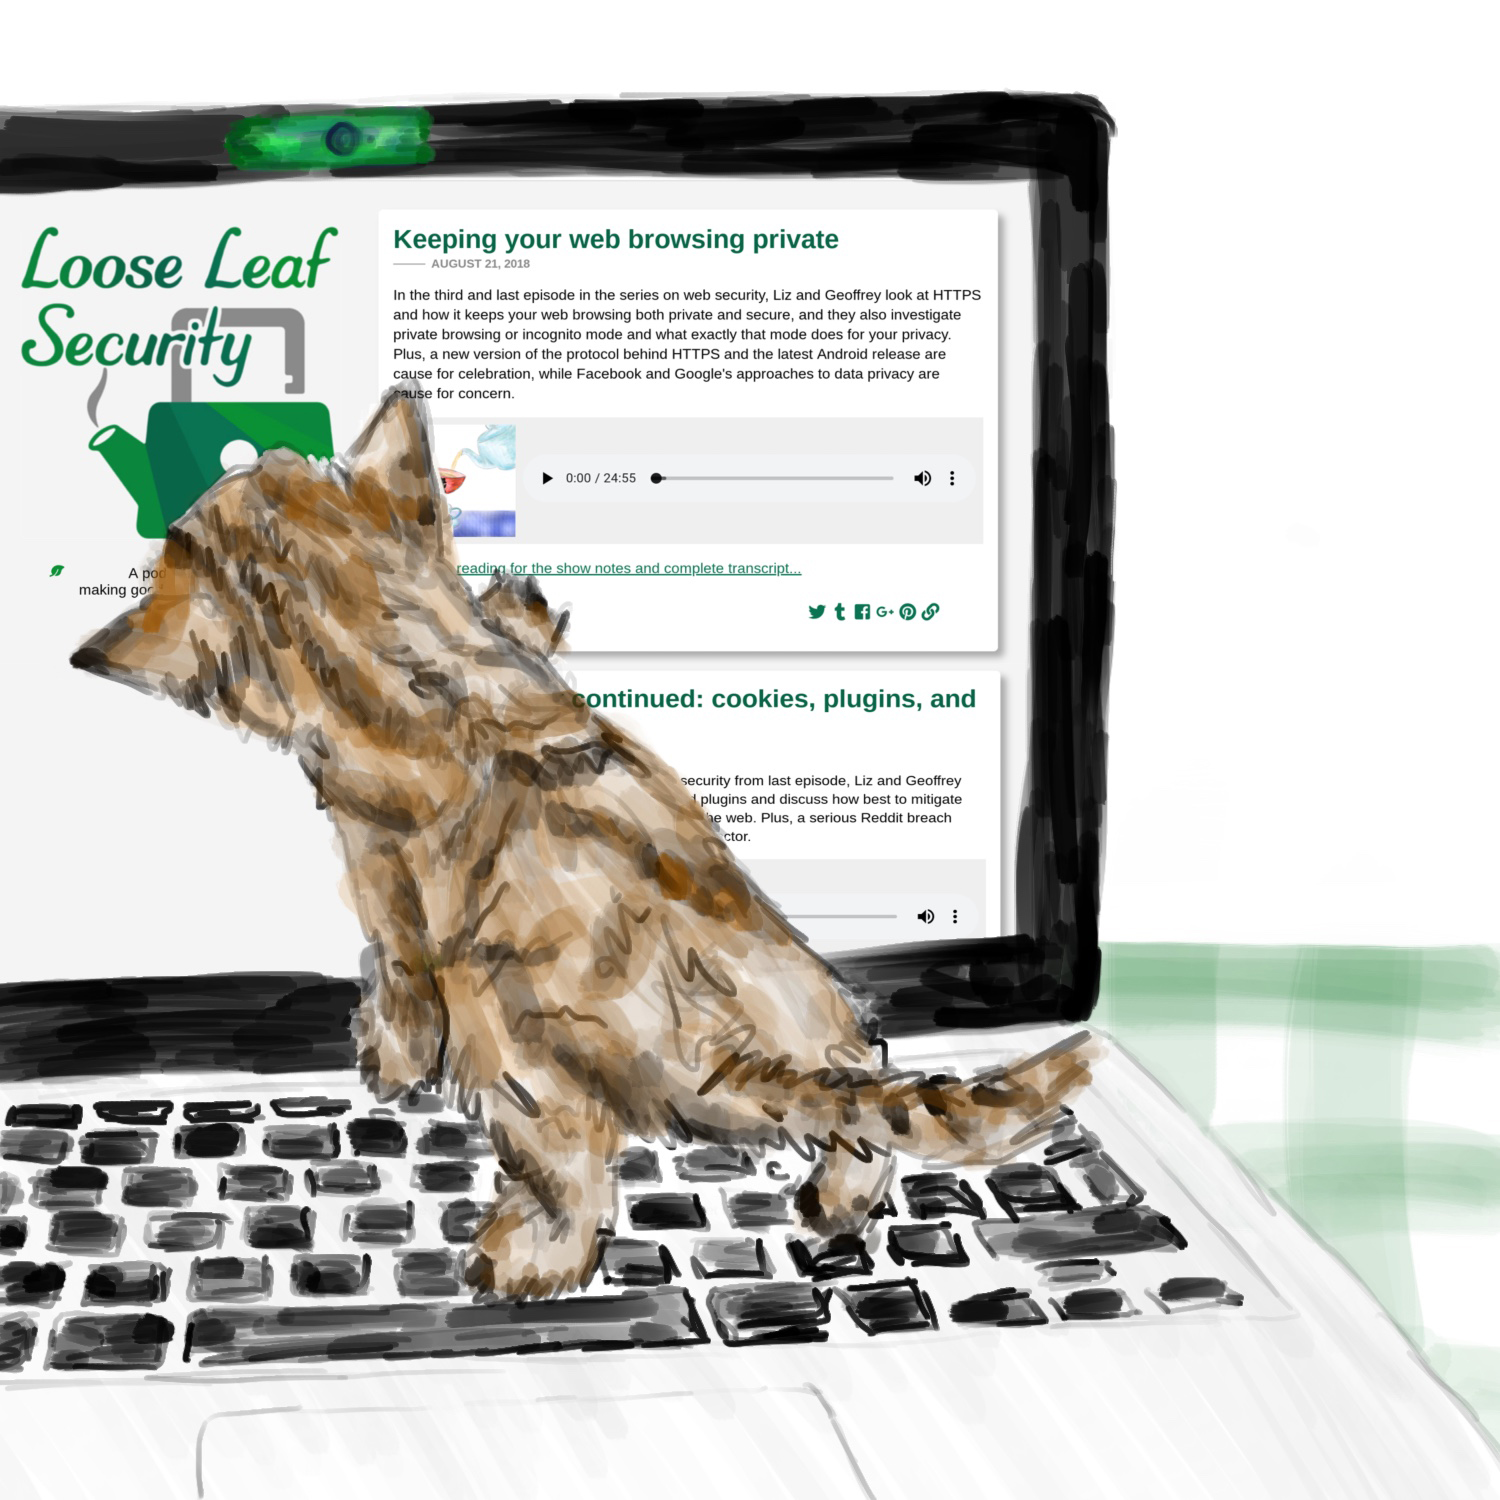 A striped kitten walking on a laptop keyboard, the laptop has tape over the webcam and Loose Leaf Security's homepage on the screen